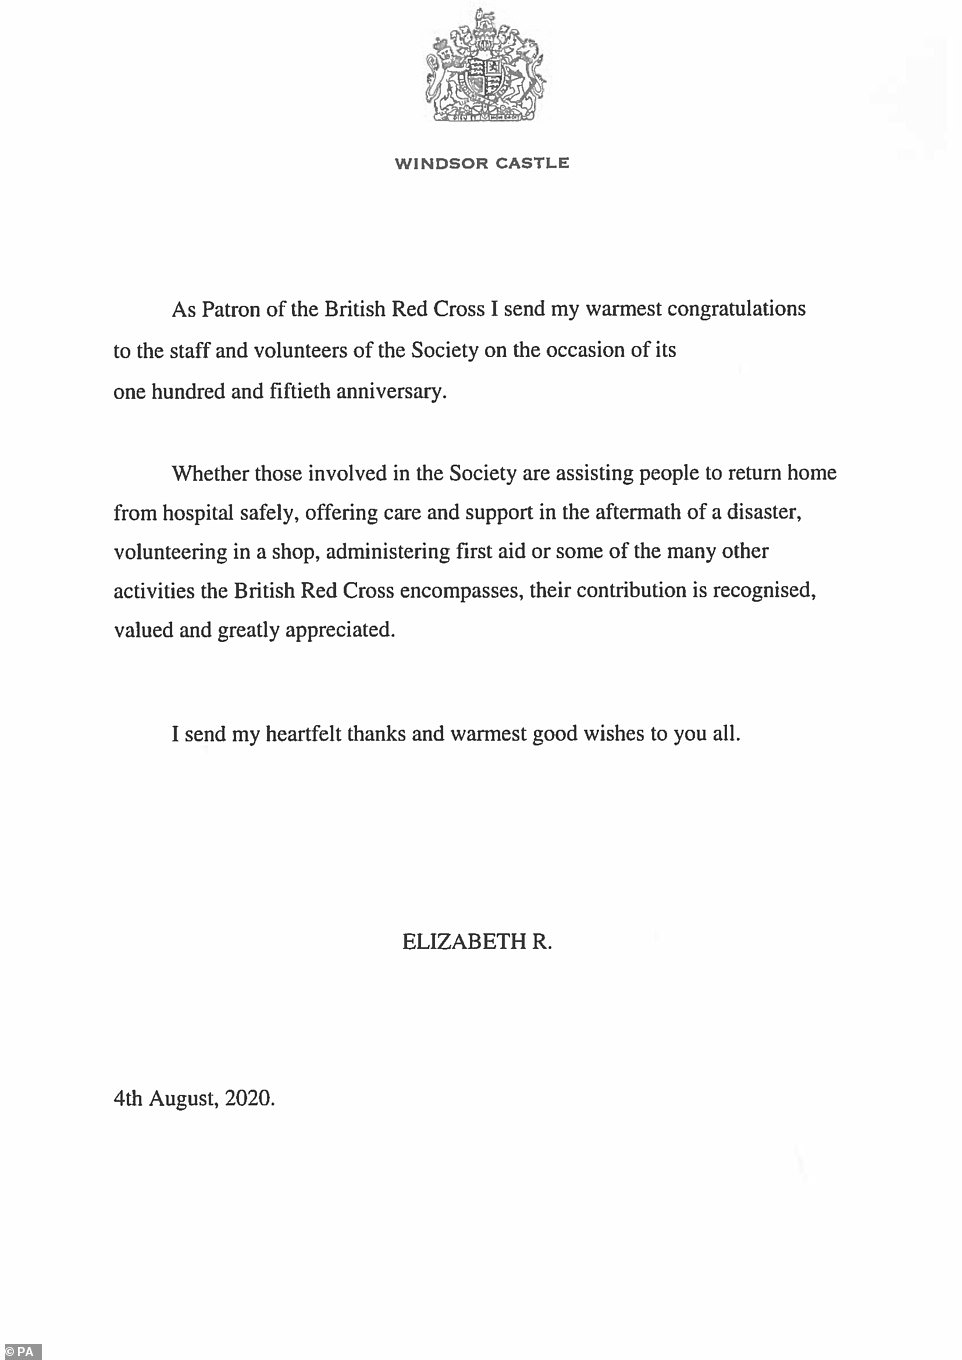 A letter written by Queen Elizabeth II to the British Red Cross to thank staff and volunteers in recognition of their 150th birthday